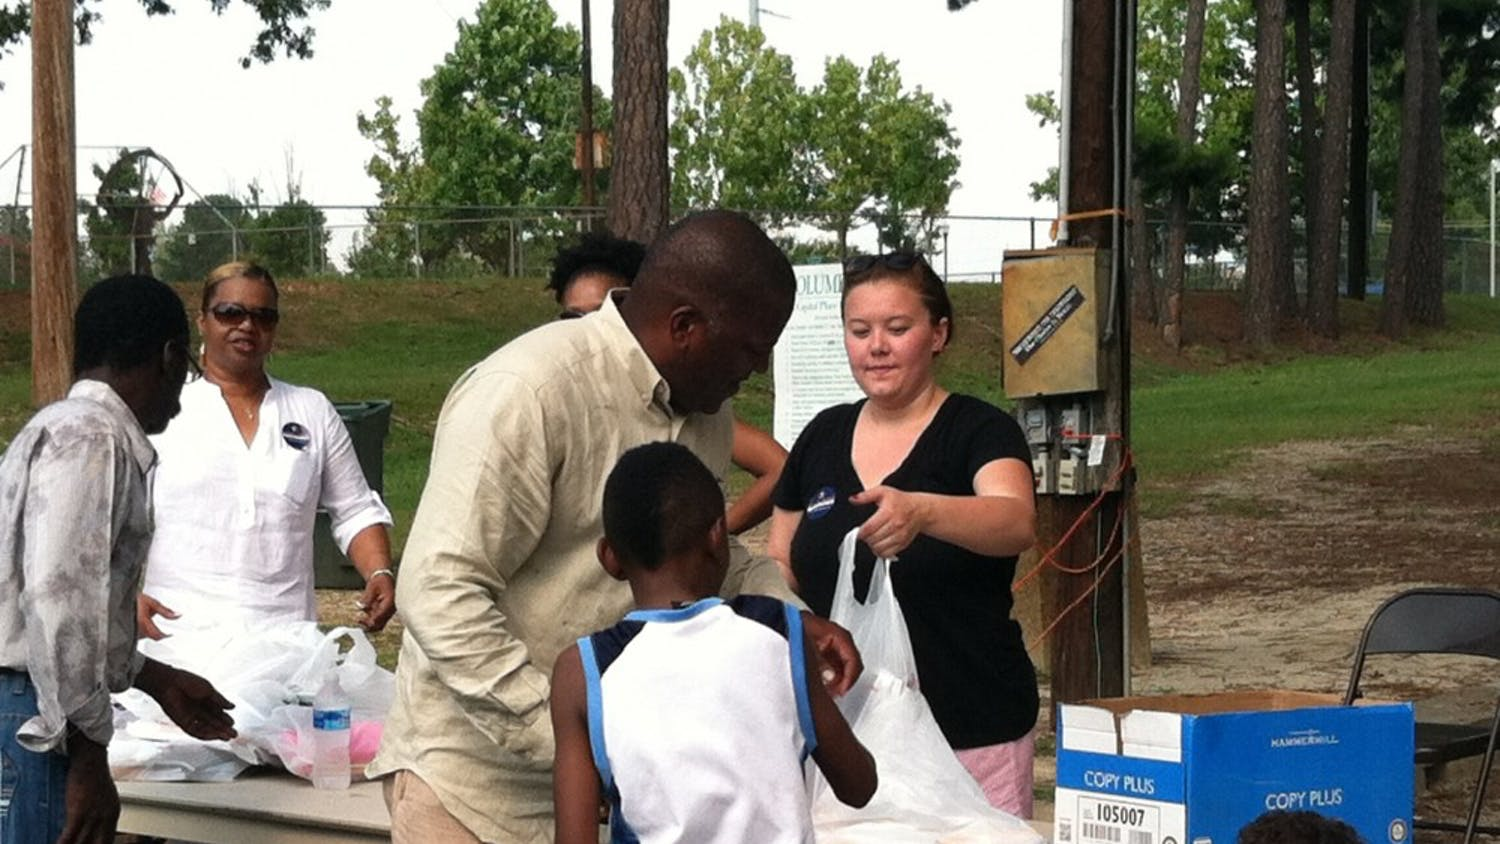 The Hyatt Park Labor Day and back-to-school celebration featured live Gospel music, free food and school supply giveaways.